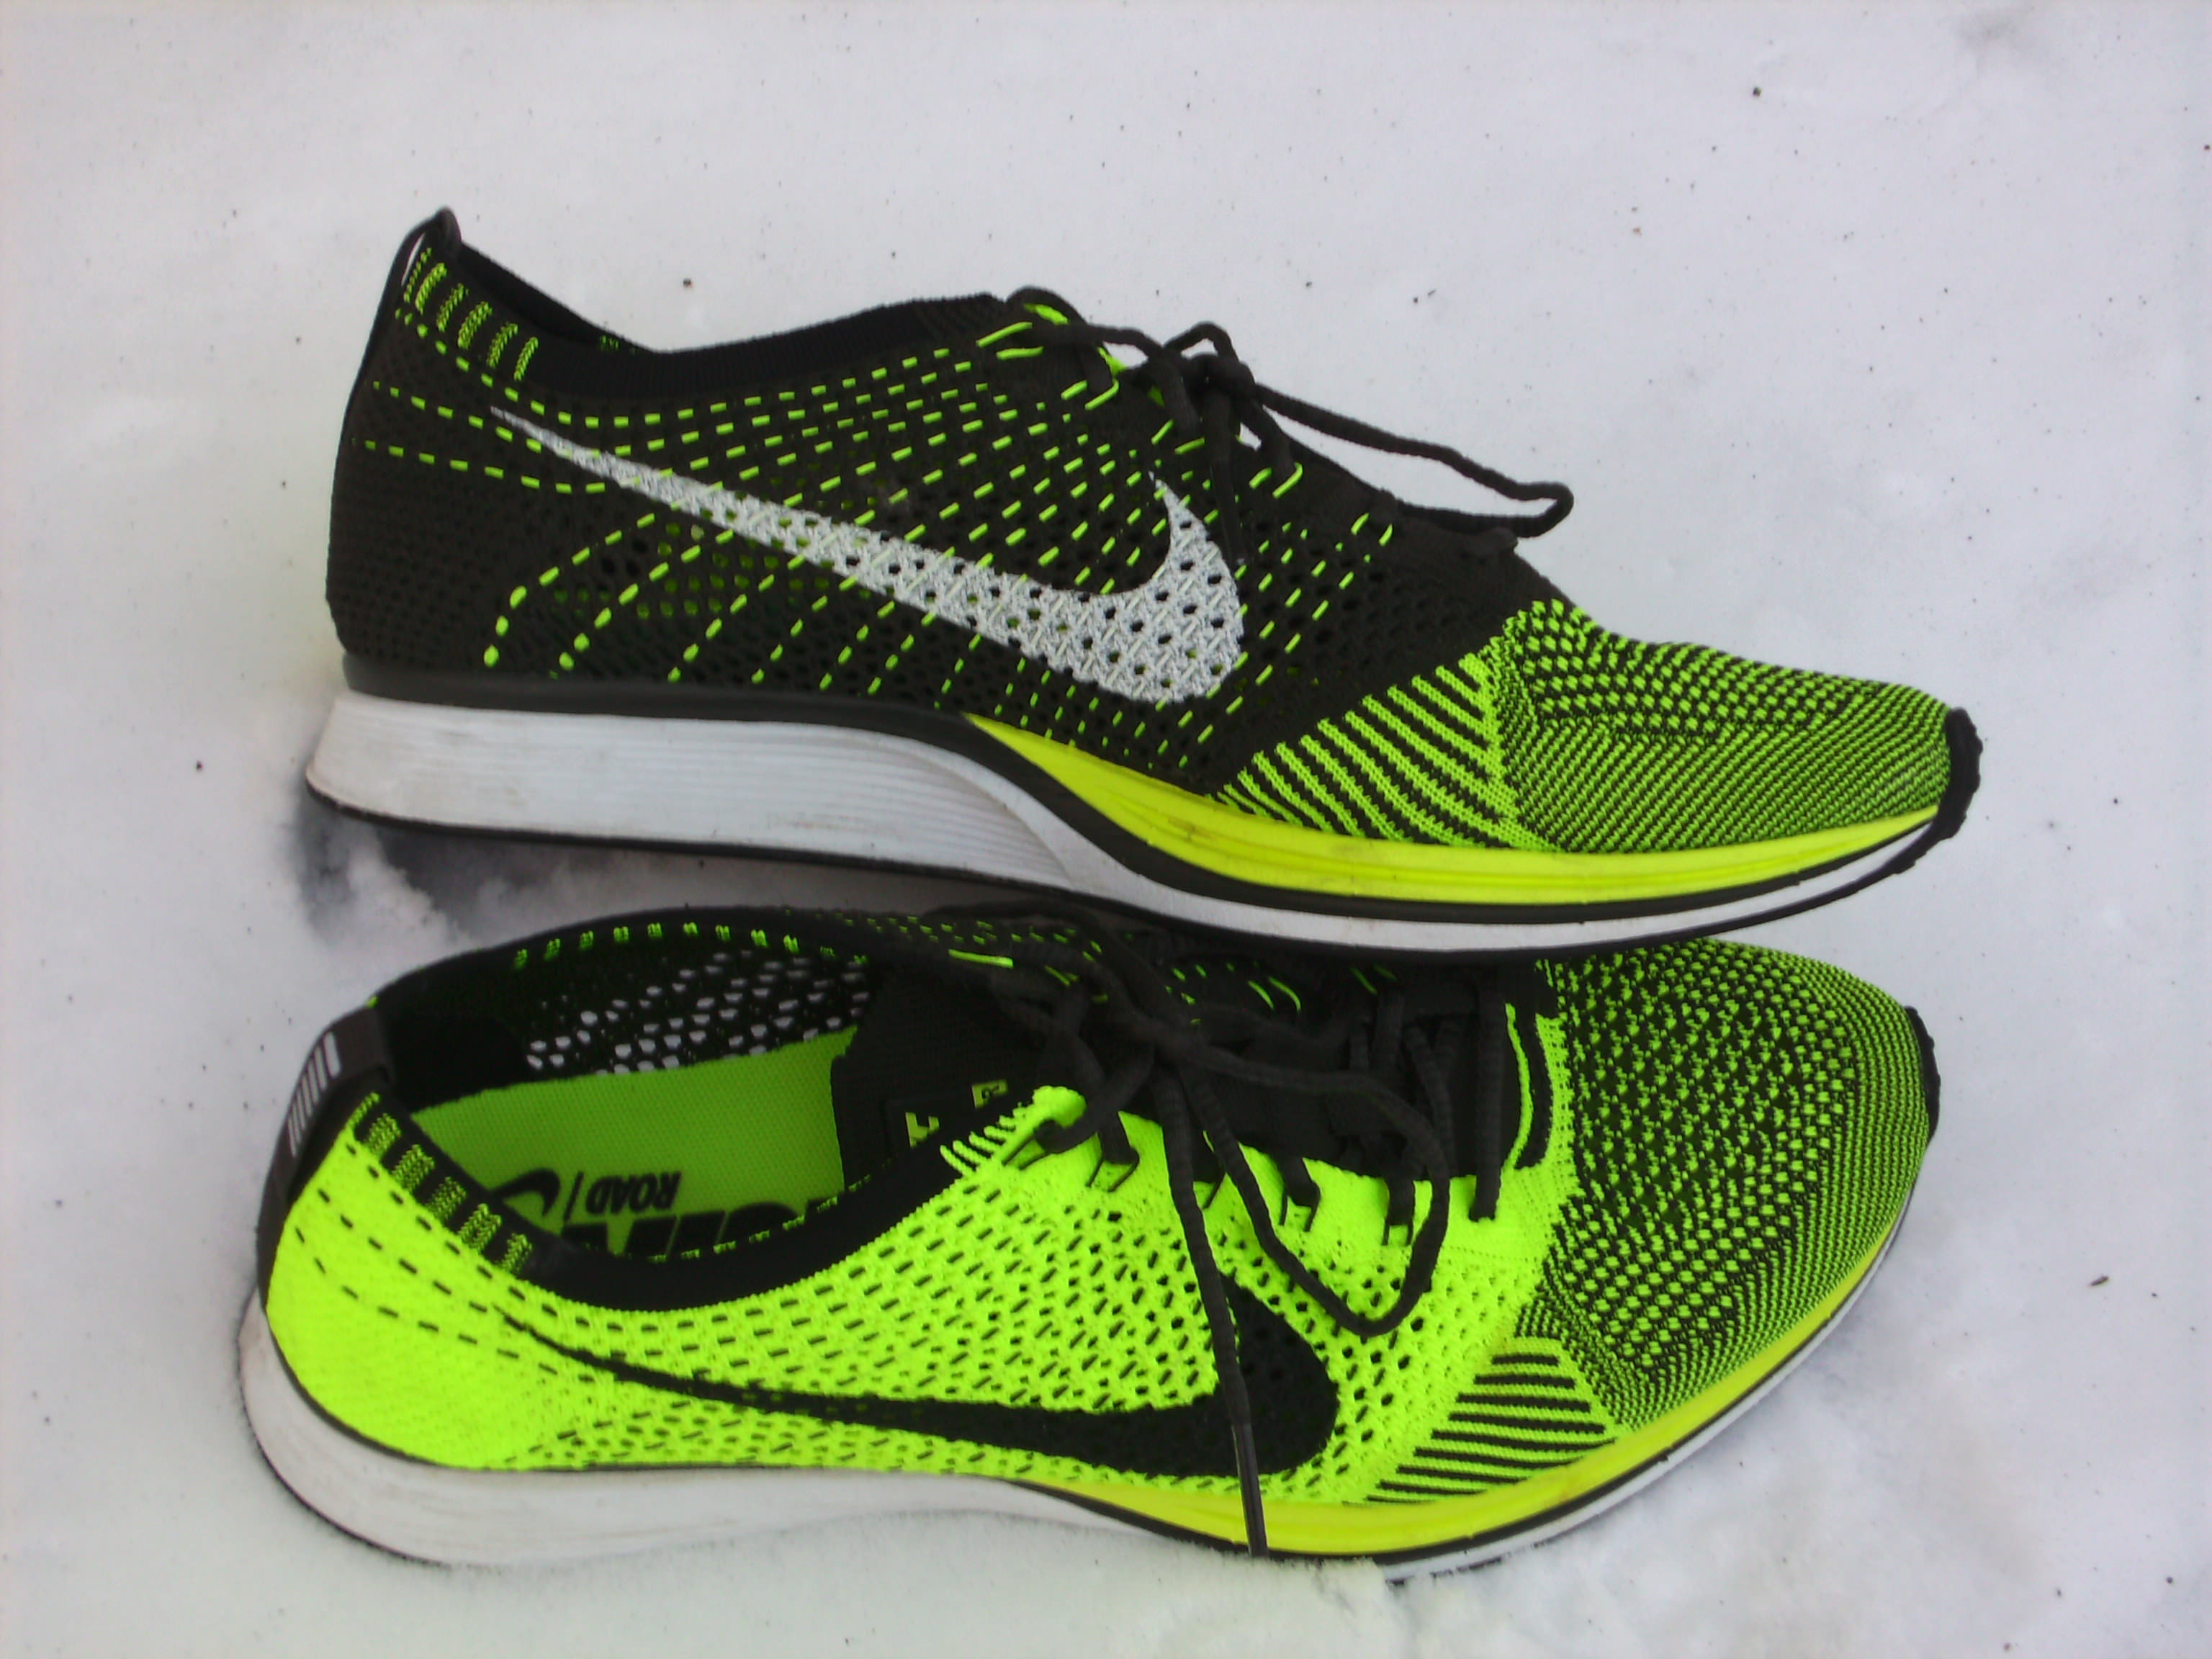 Nike FlyKnit Racer Review | Running Shoes Guru